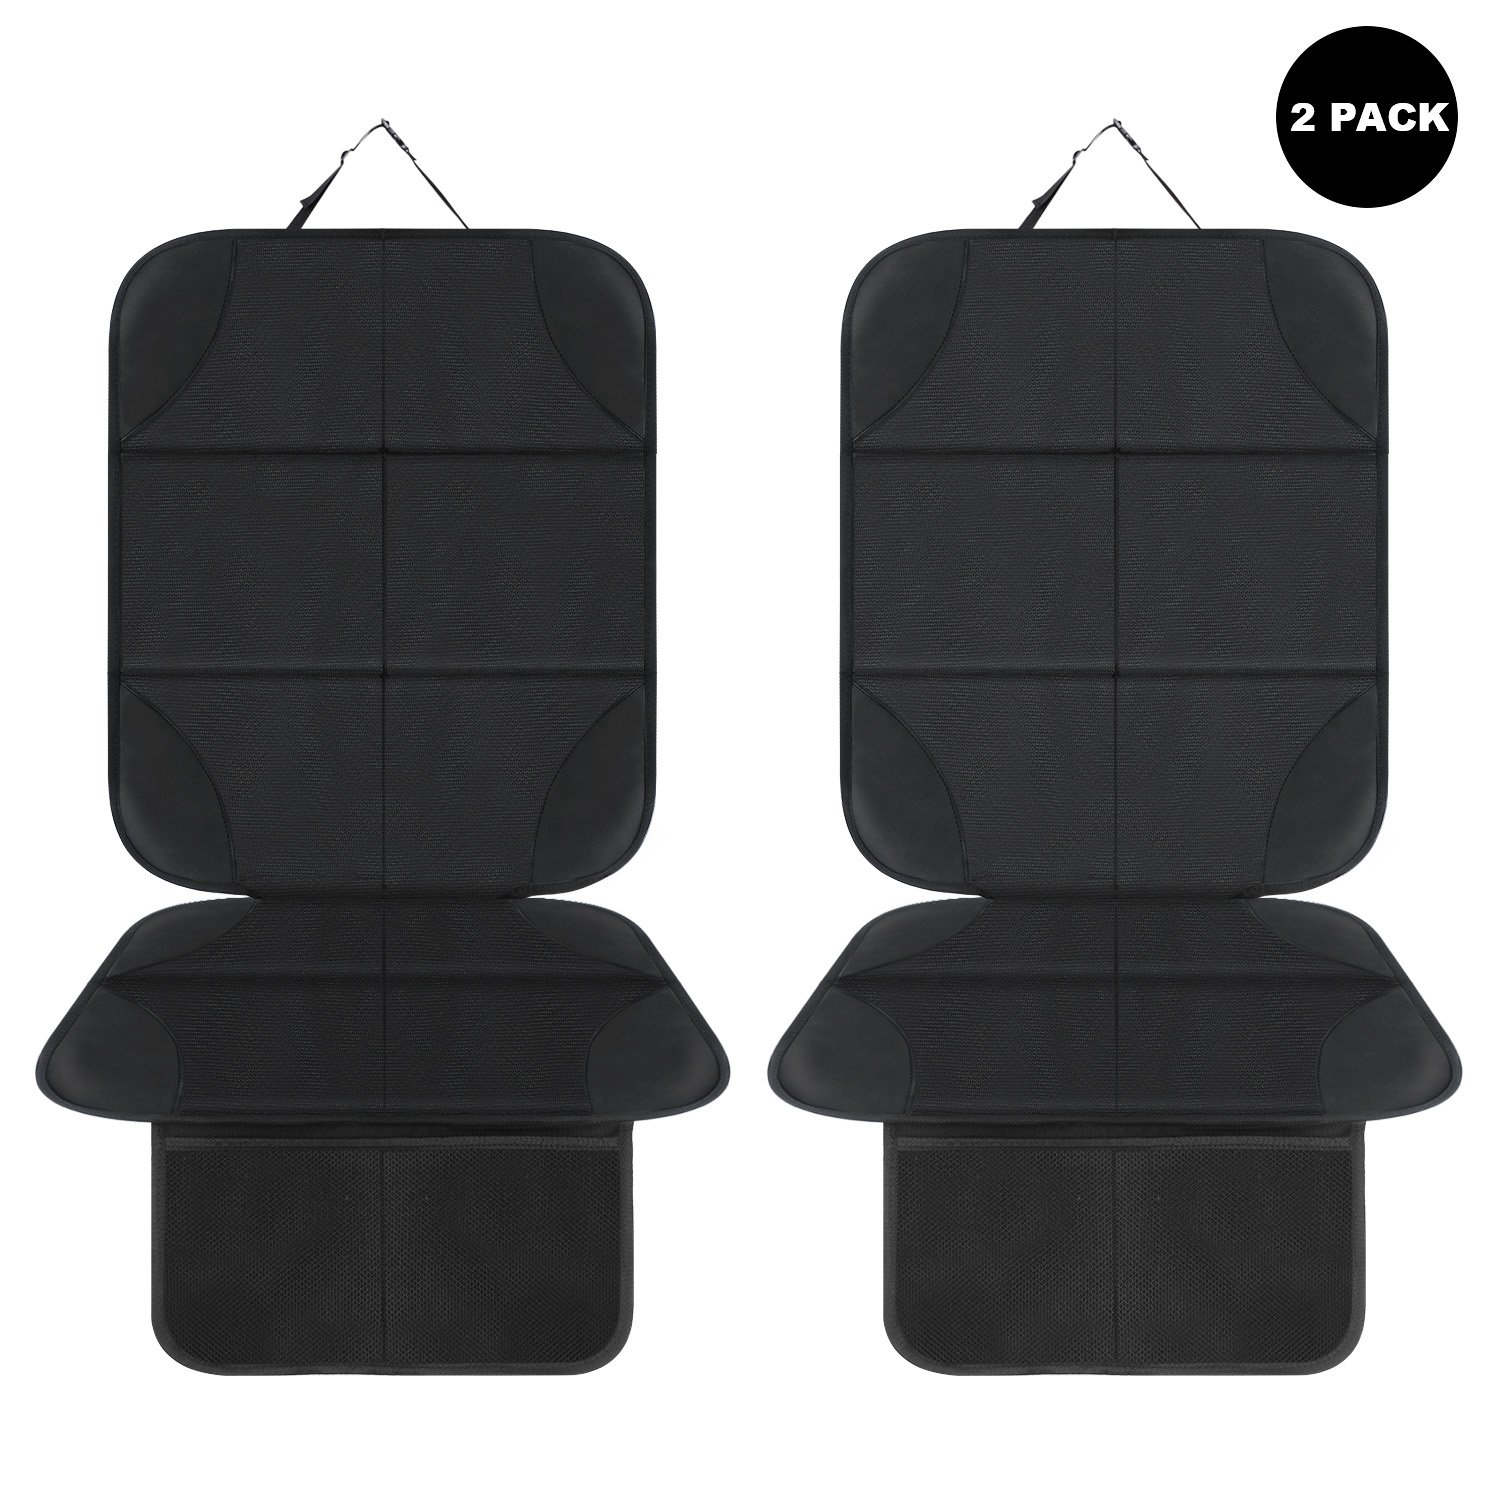 Aoafun Car Seat Protector,with Thickest Padding,Best Protection for Cars Seats, Cover Pad Protects Automotive Vehicle Leather or Cloth Upholstery.(2pcs Black)